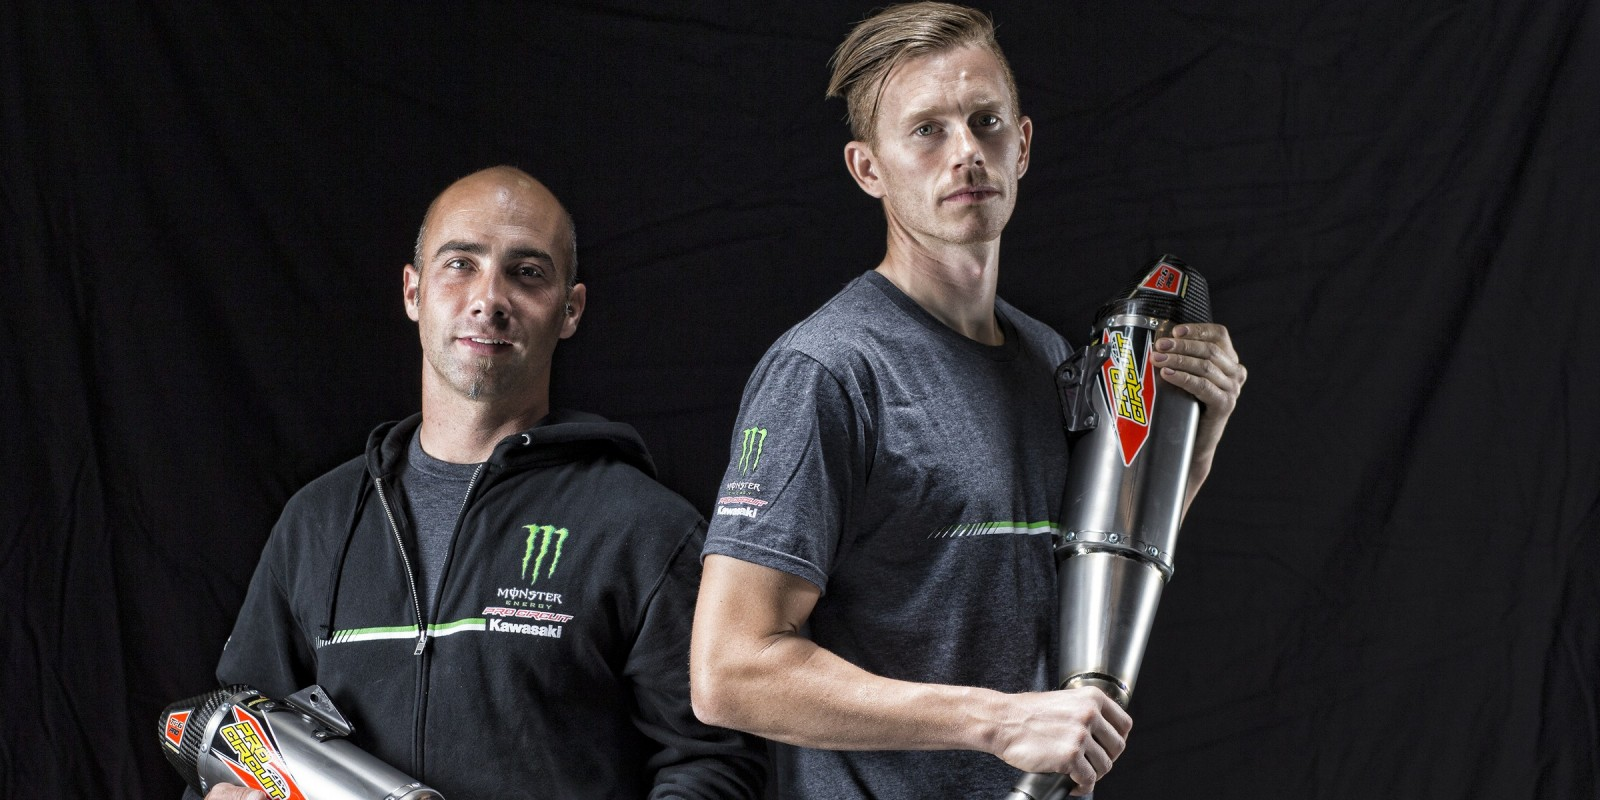 Jon Primo and Olly Stone from Monster Energy Pro Circuit Kawasaki